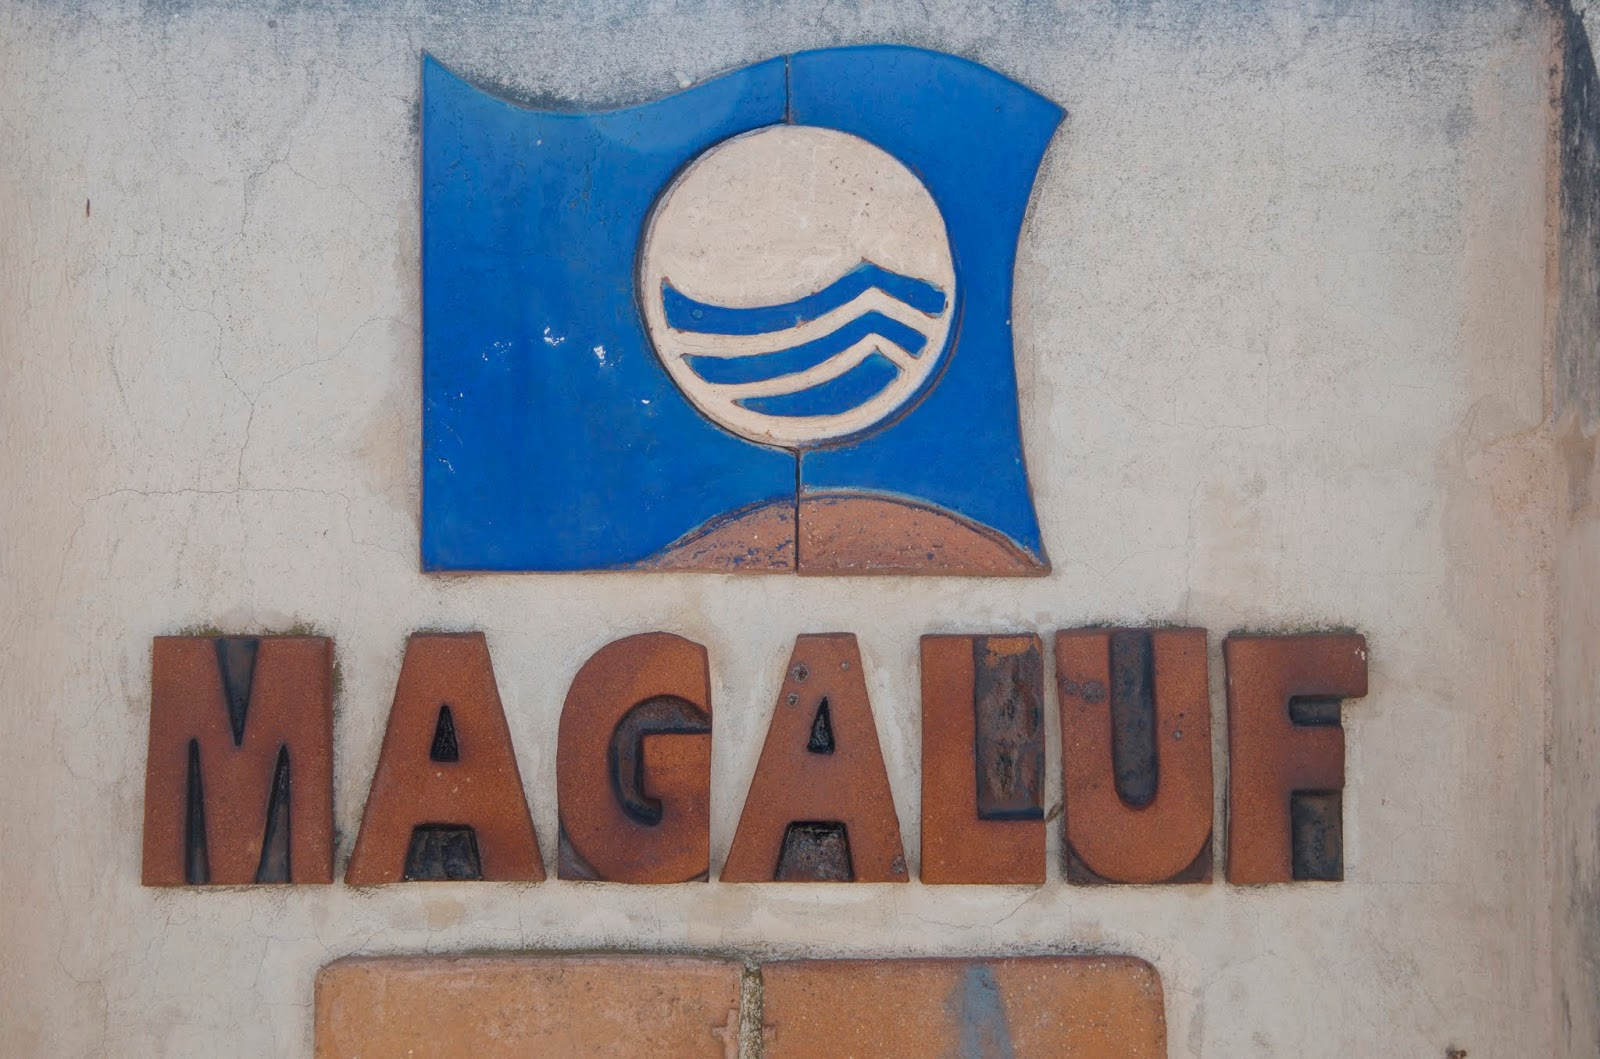 Magaluf sign